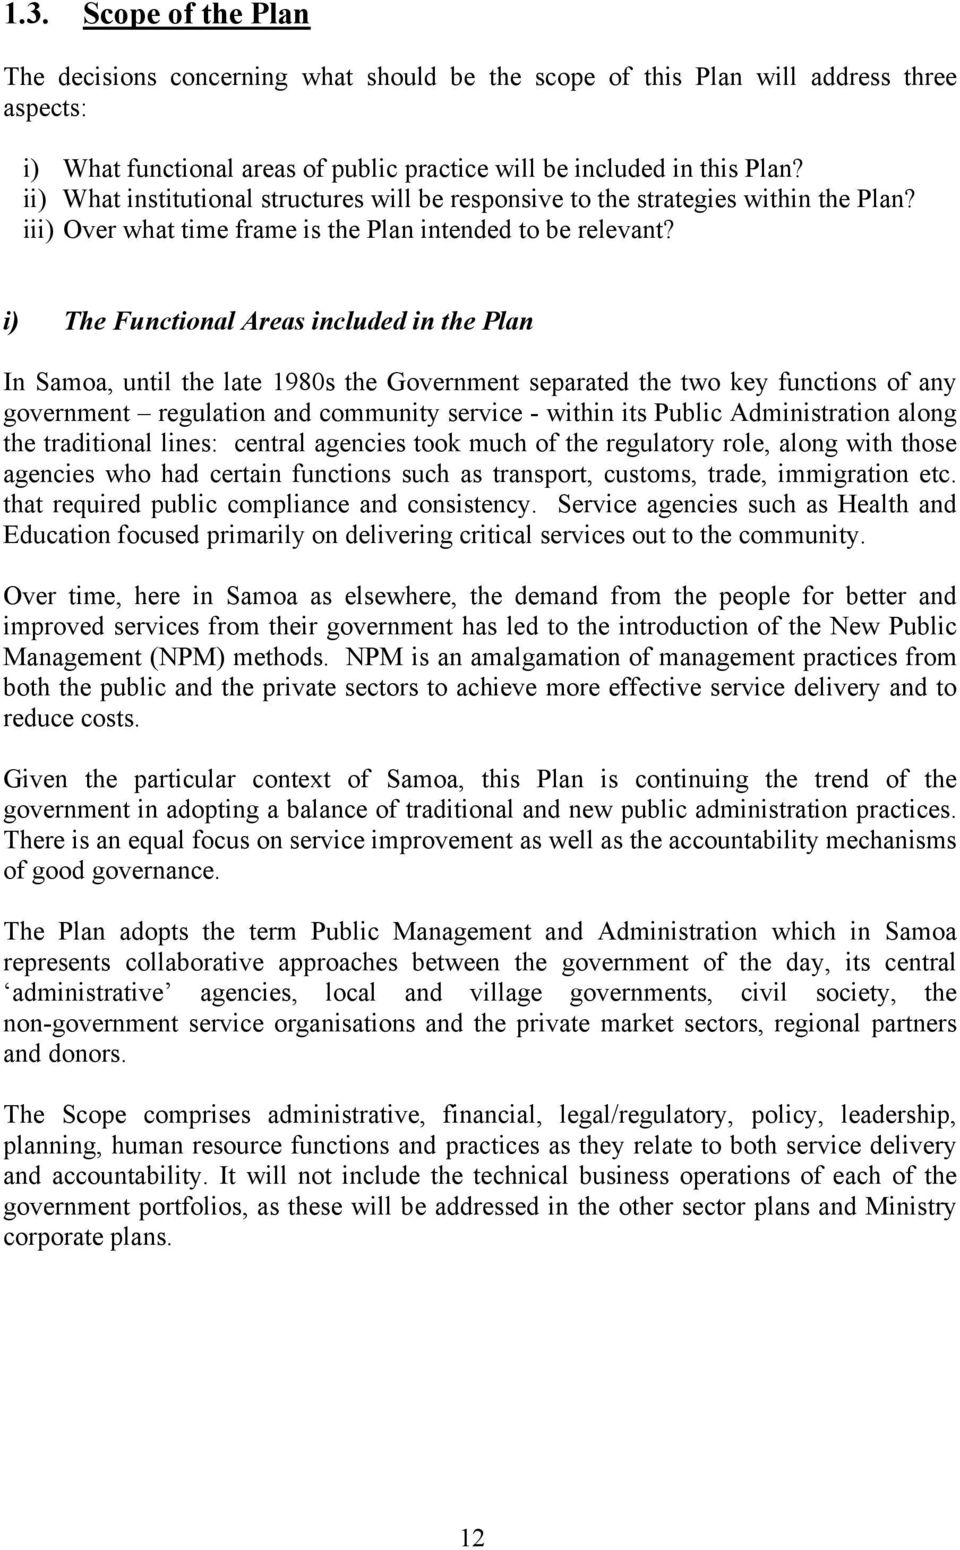 i) The Functional Areas included in the Plan In Samoa, until the late 1980s the Government separated the two key functions of any government regulation and community service - within its Public